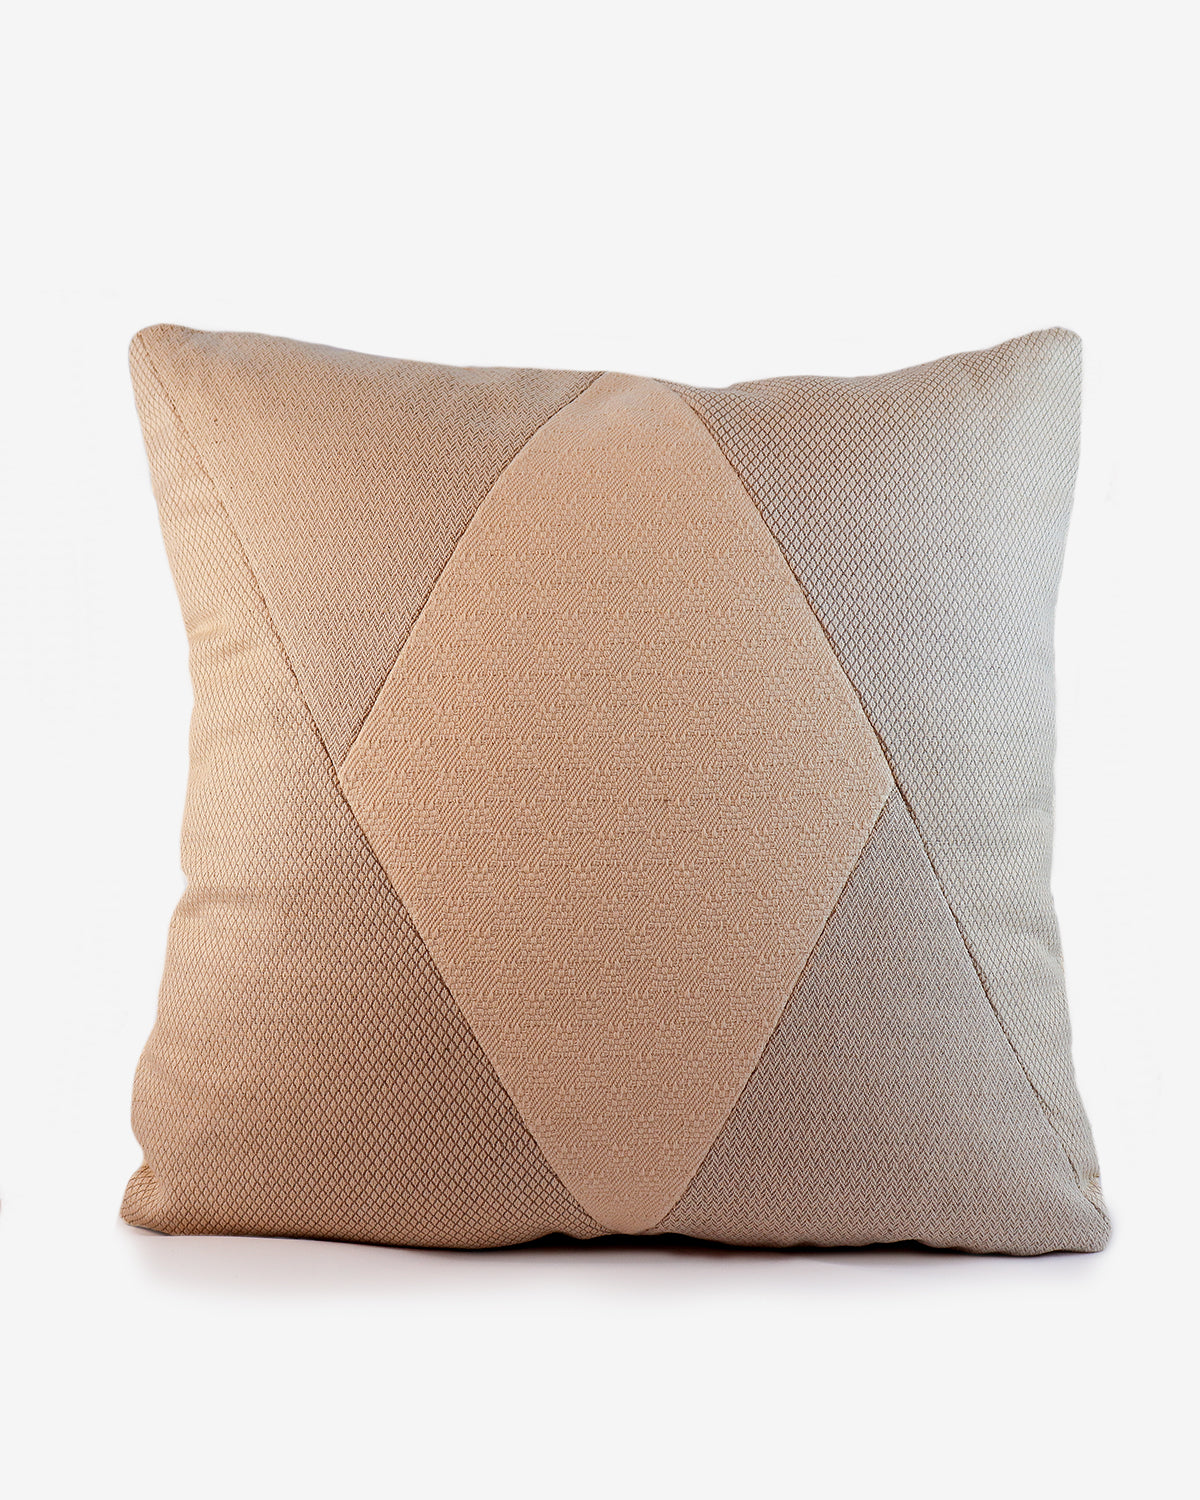 Decorative Pillow Clio 50x50 Nemori Home Lifestyle